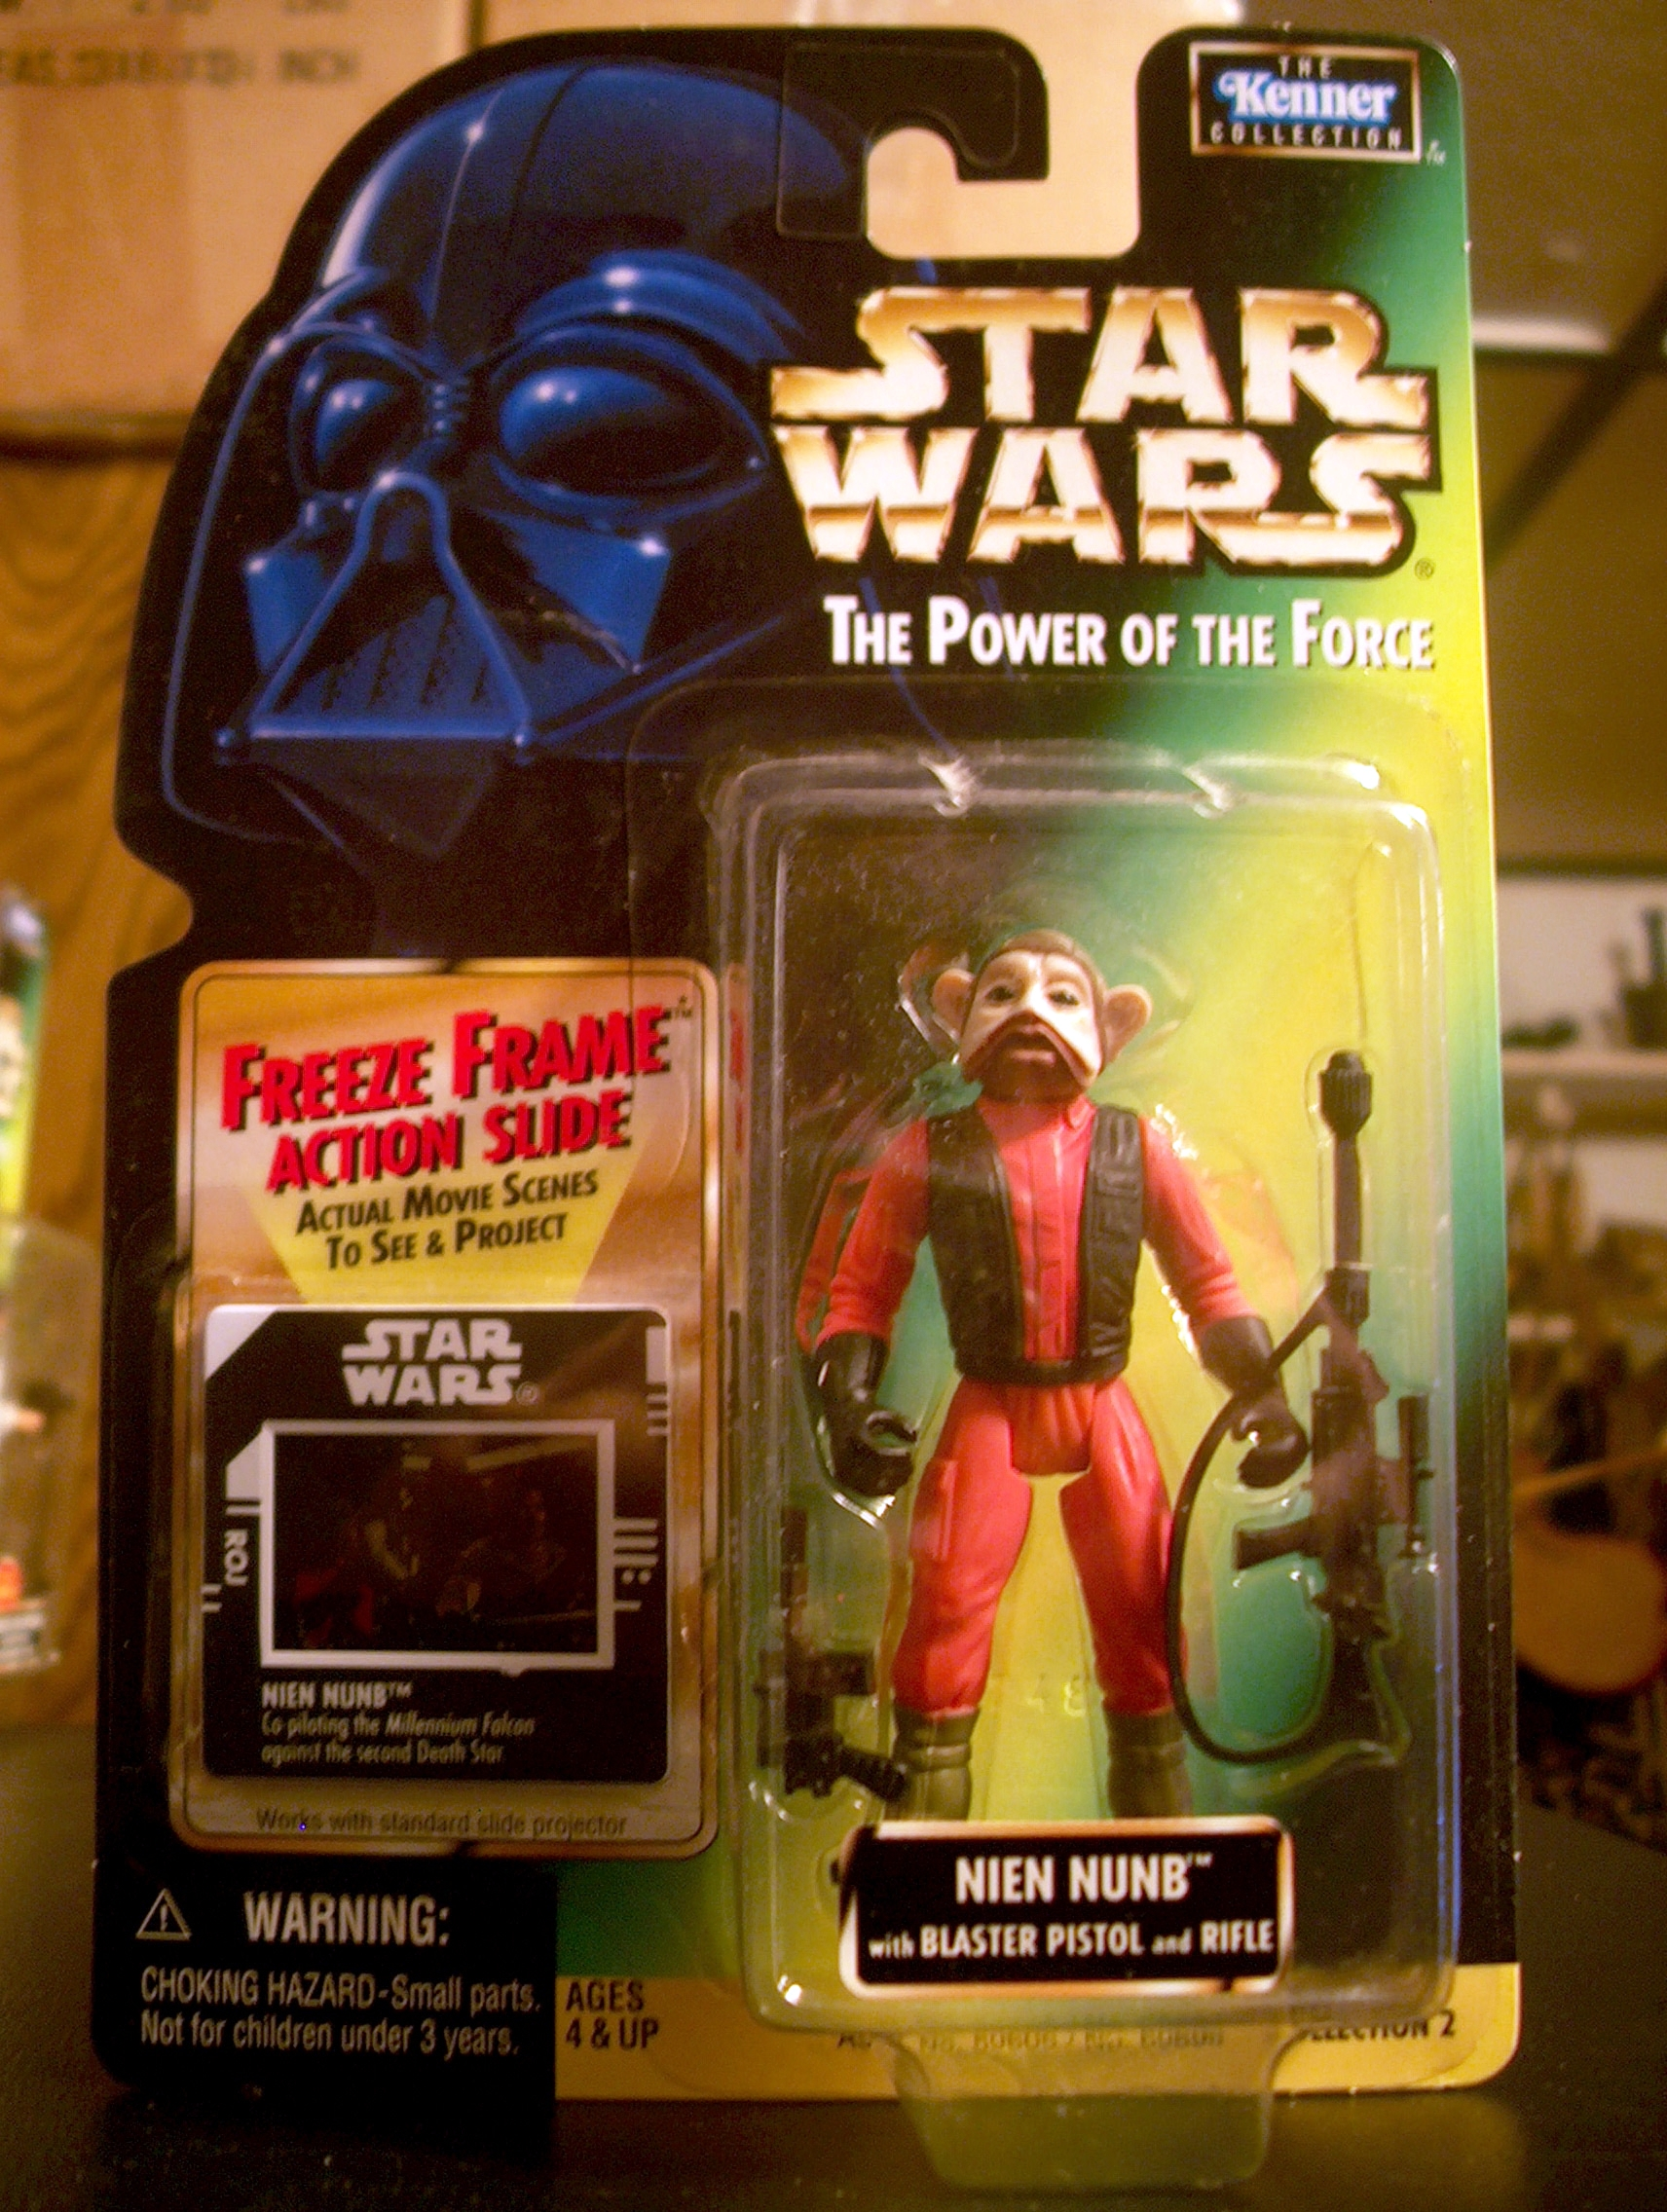 Nien Nunb with Blaster Pistol and Rifle